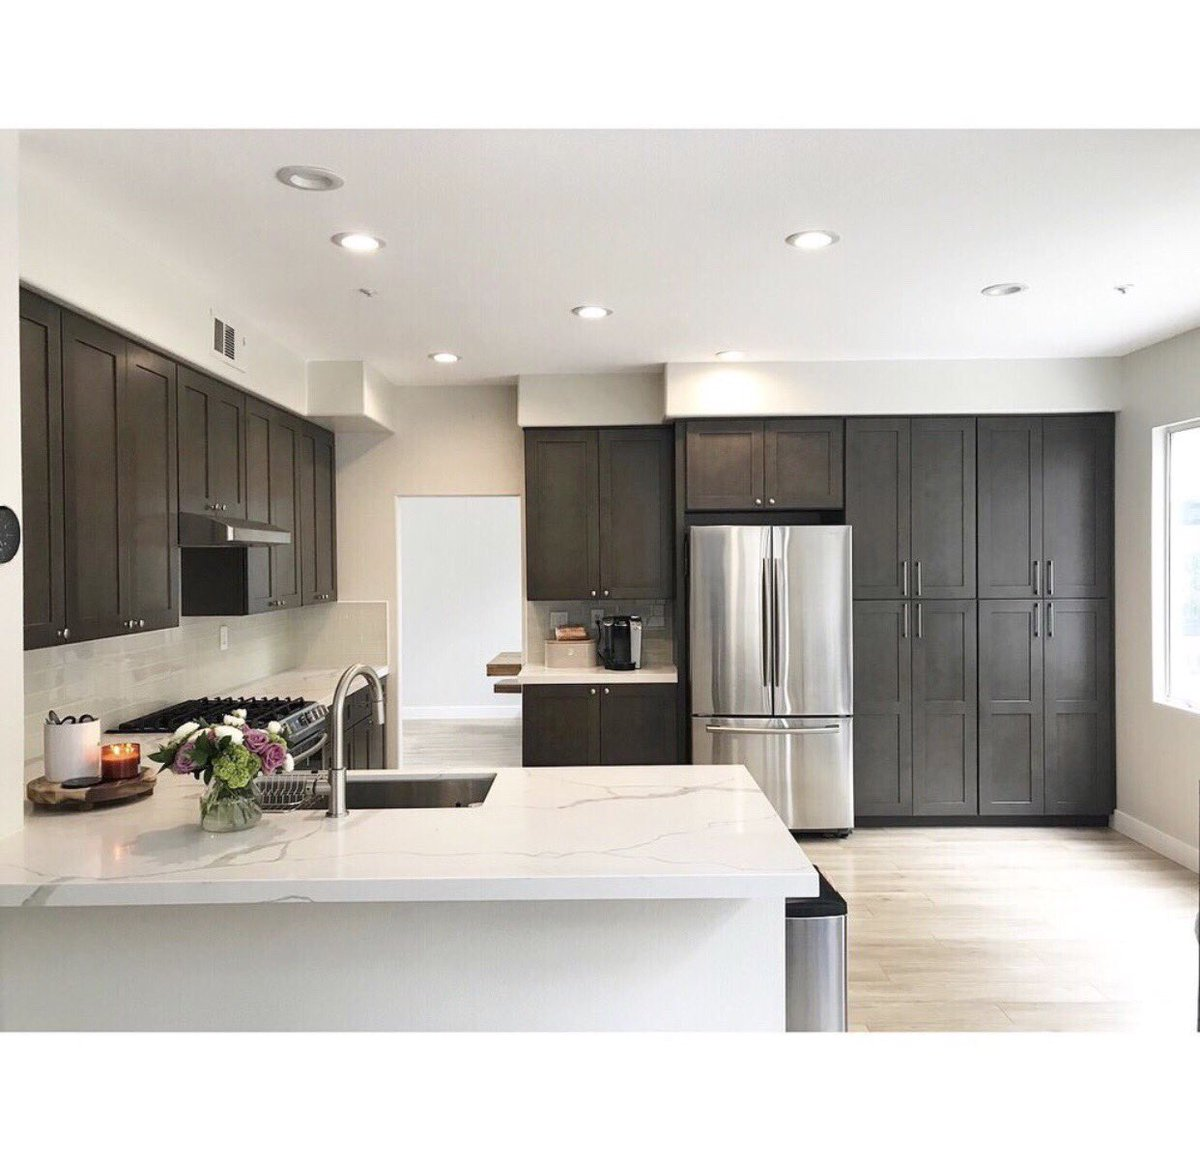 Genuine Materials Inc On Twitter Another Kitchen Remodel Using Our Calacatta Luna Gqe002 Beautiful Contrast With The Darker Cabinets Great Job Jose With Premiere Countertops Genuinequartz Quartz Countertops Prefab Slab Custom